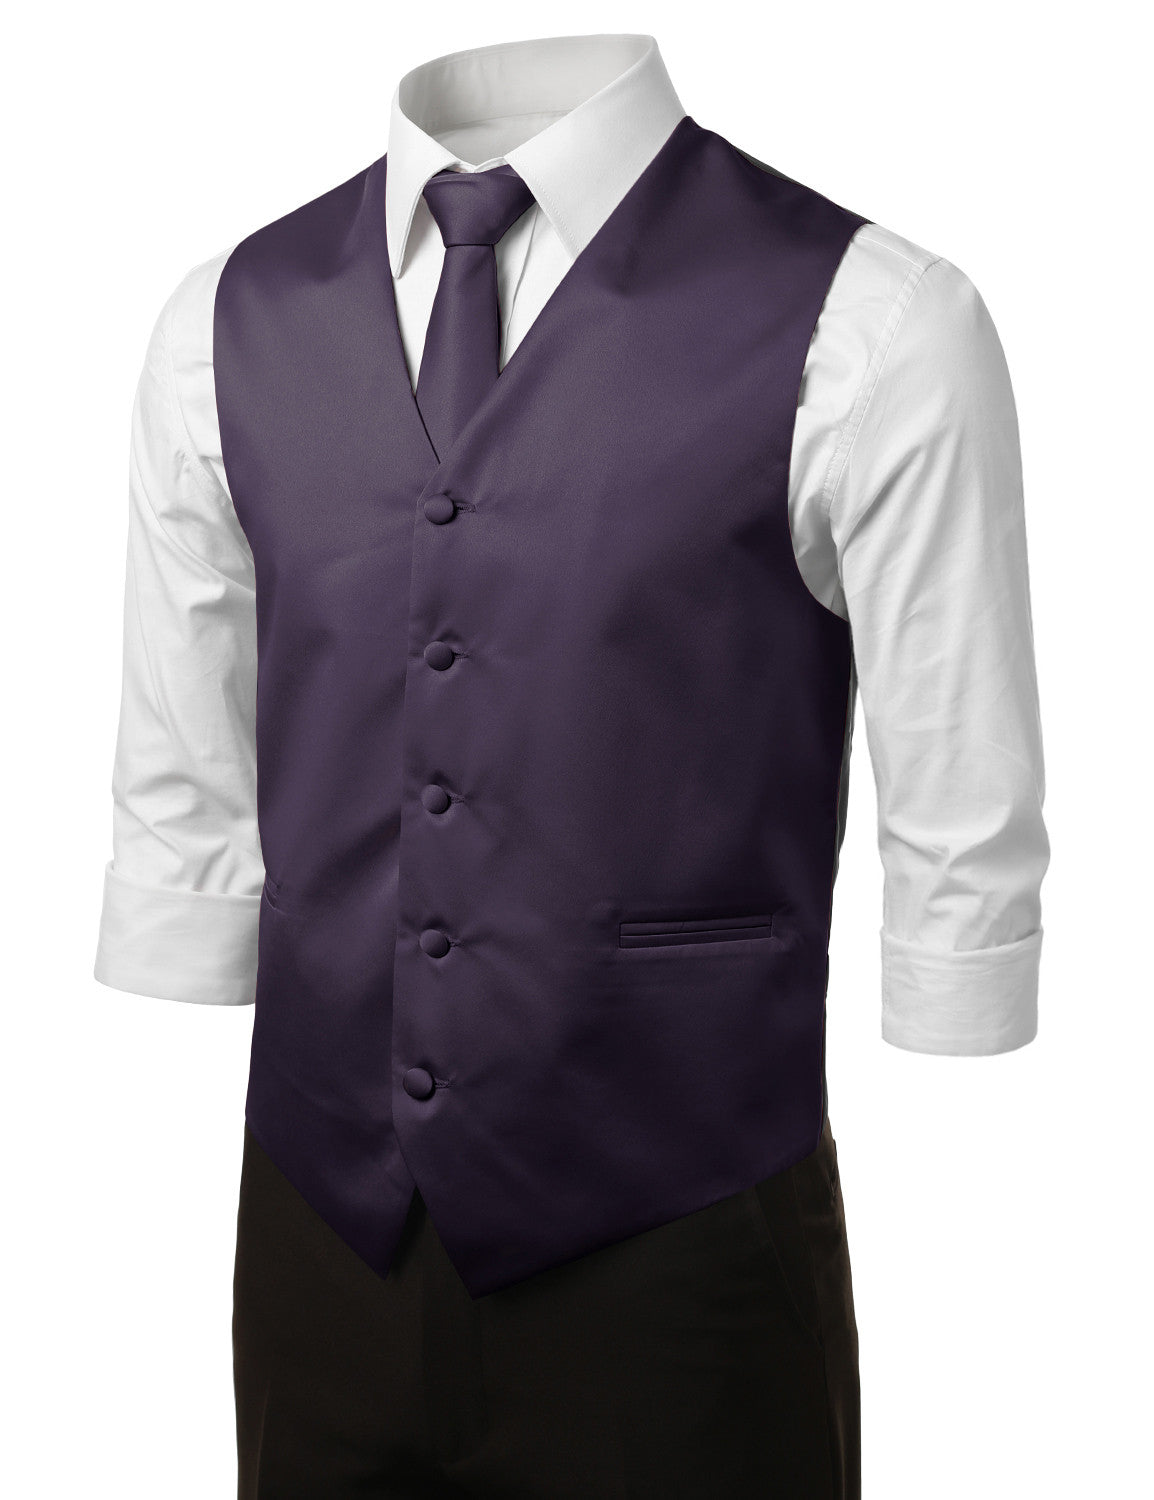 PURPLE7 Formal Tuxedo 3 Piece Vest Set (Vest, Necktie, Pocket Square)- MONDAYSUIT